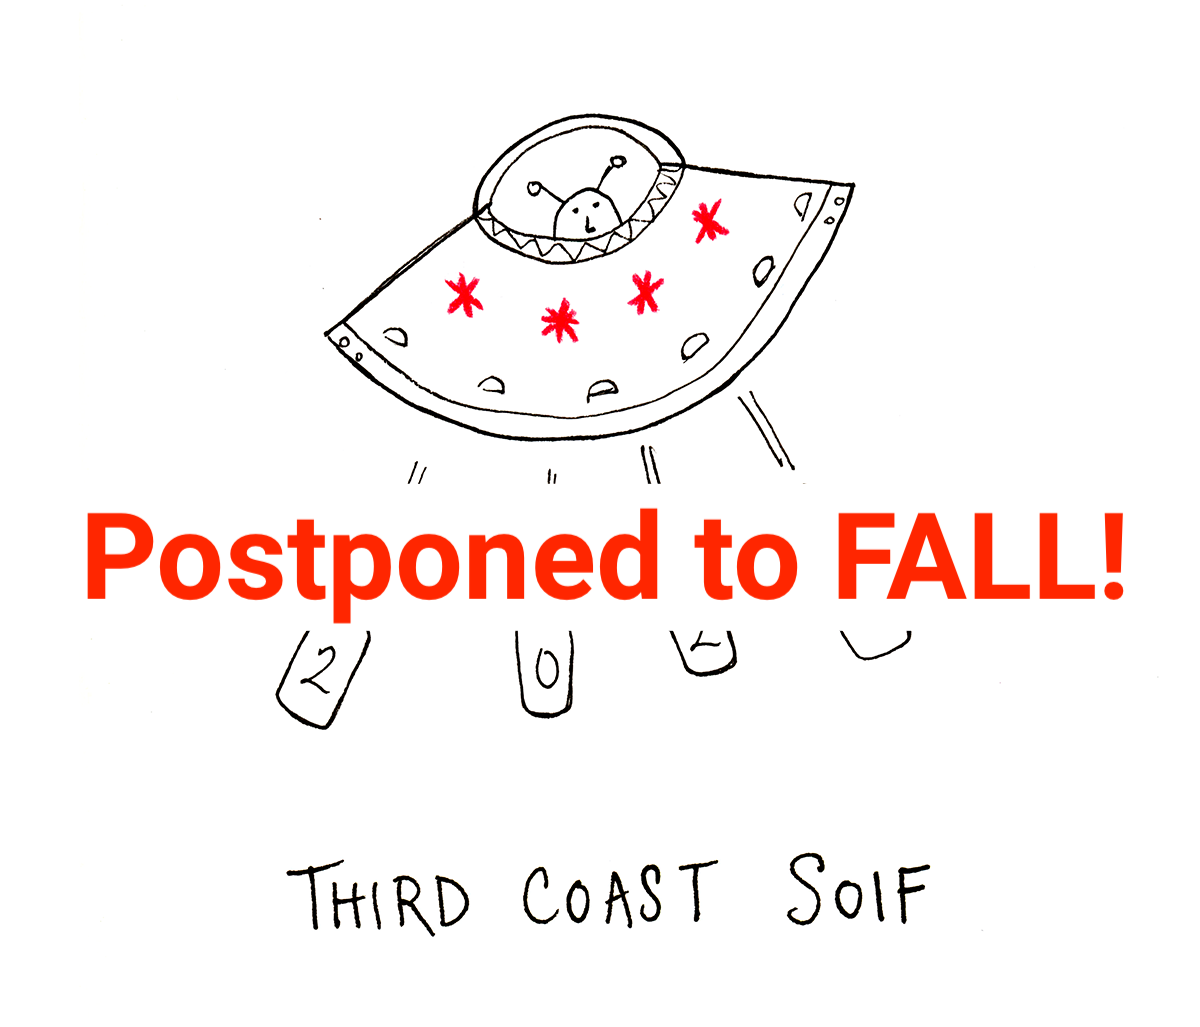 Third Coast Soif - POSTPONED TO FALL